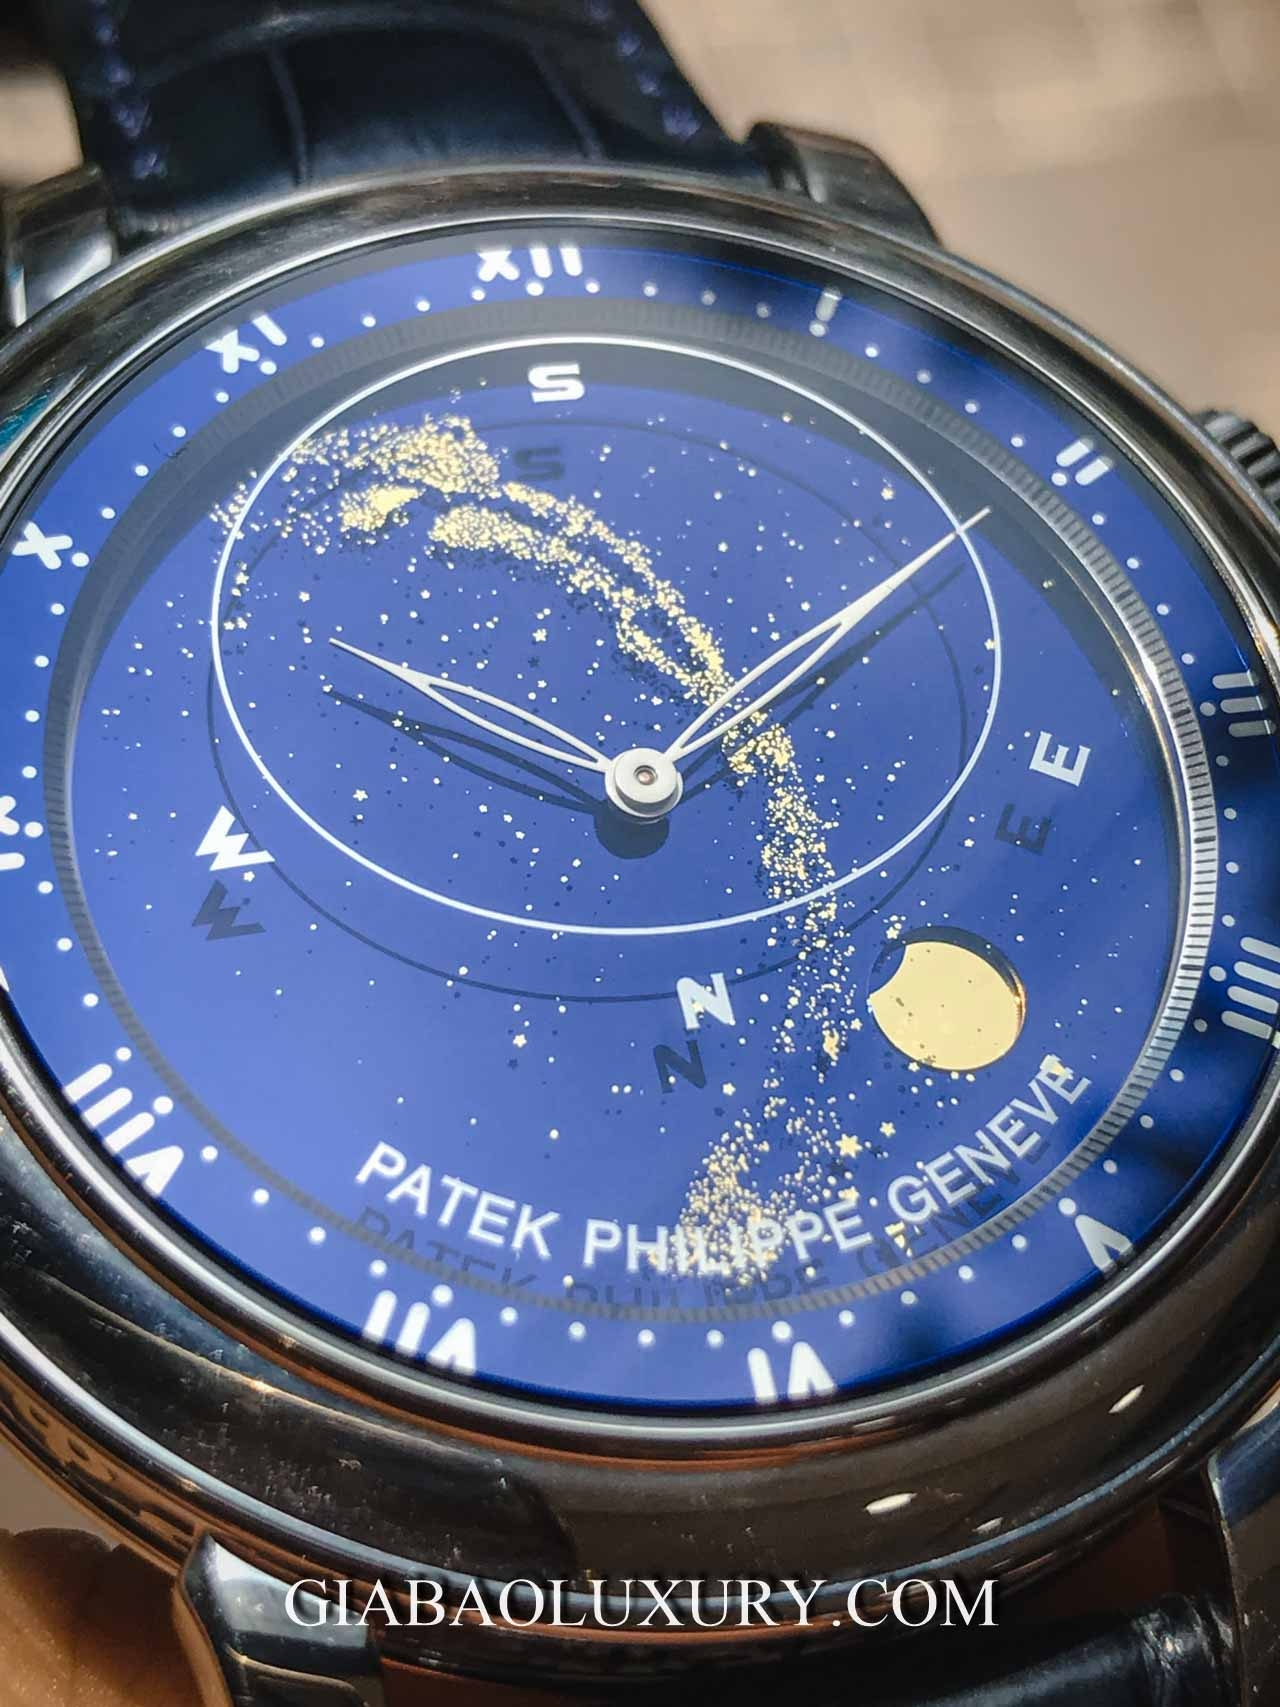 Đồng Hồ Patek Philippe Grand Complications 5102G-001 Sky Moon Celestial